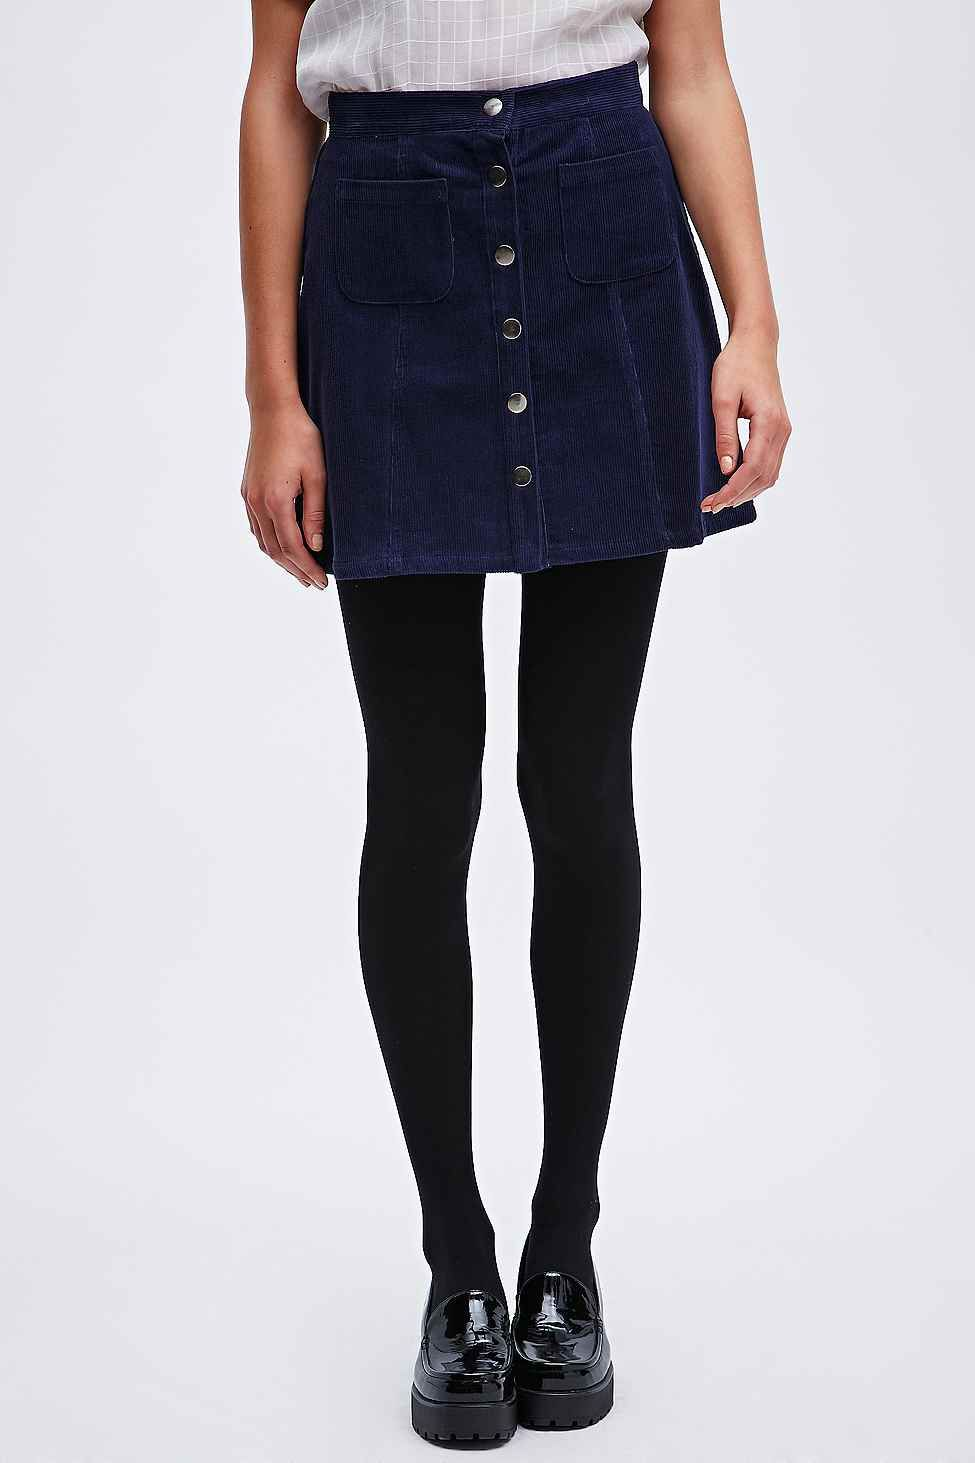 Cooperative A-Line Cord Skirt | SKIRTS | Pinterest | Urban ...